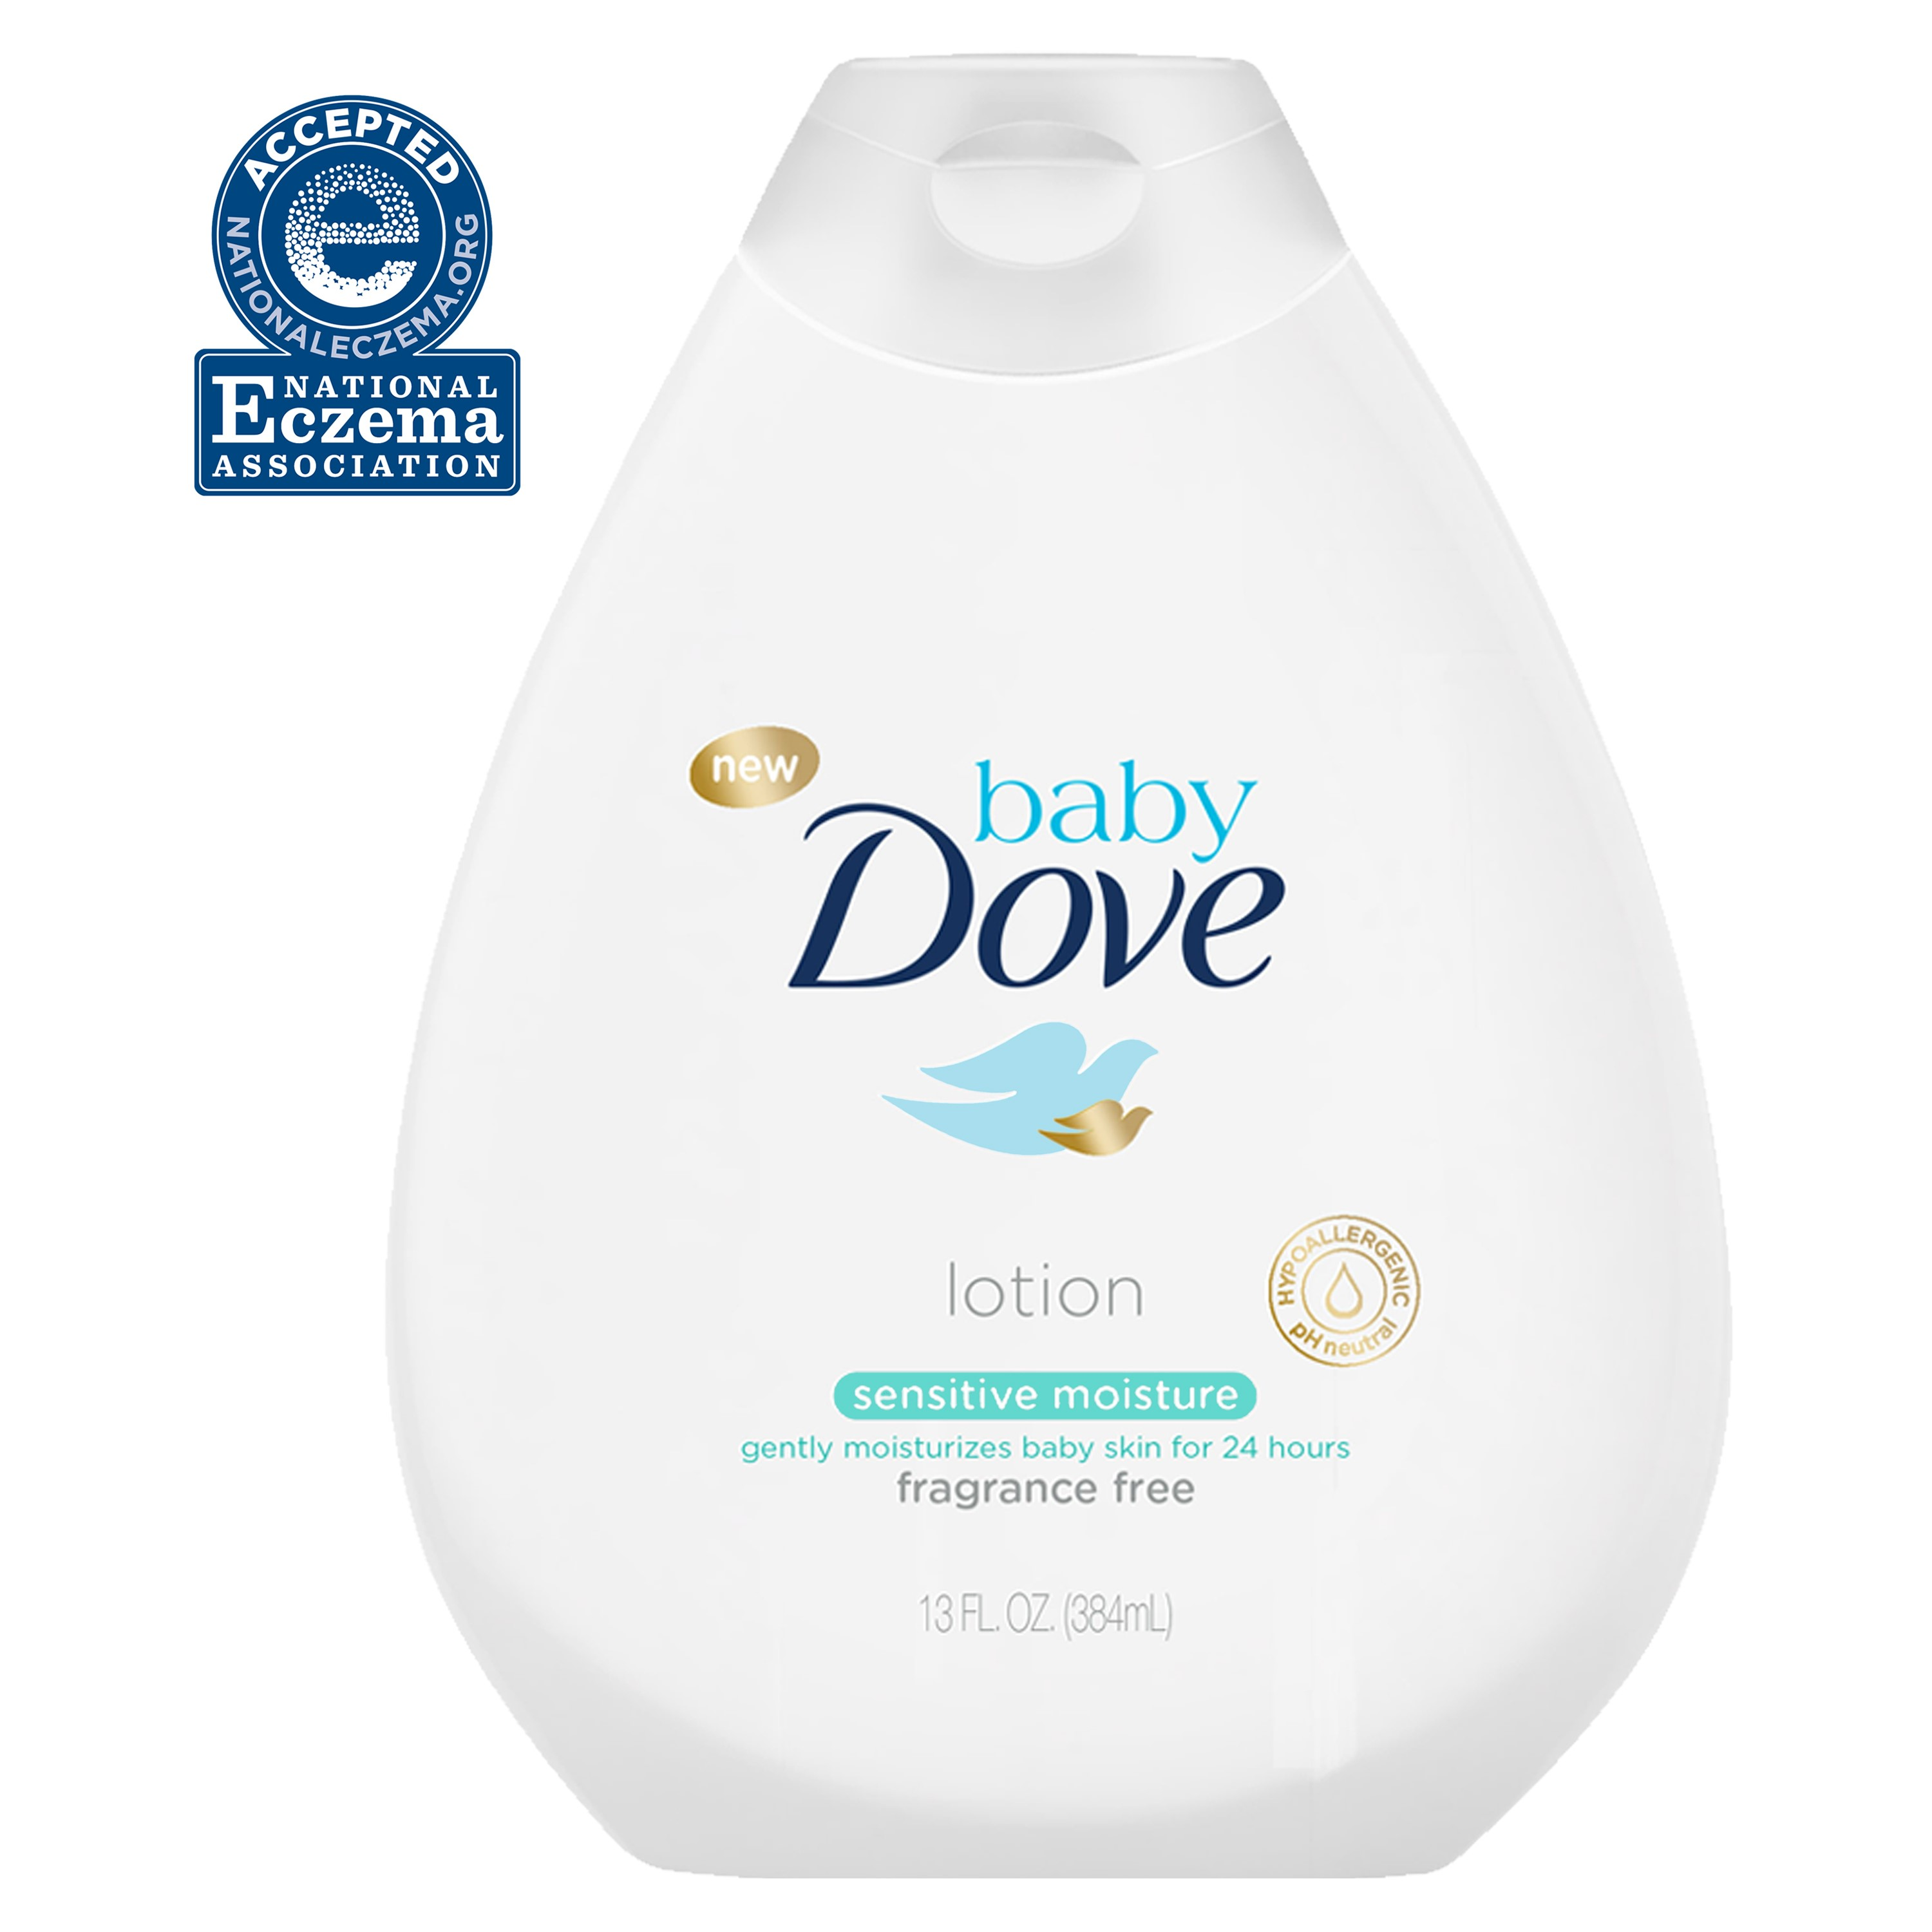 Baby Dove Sensitive Moisture Fragrance-Free Lotion, 13 oz